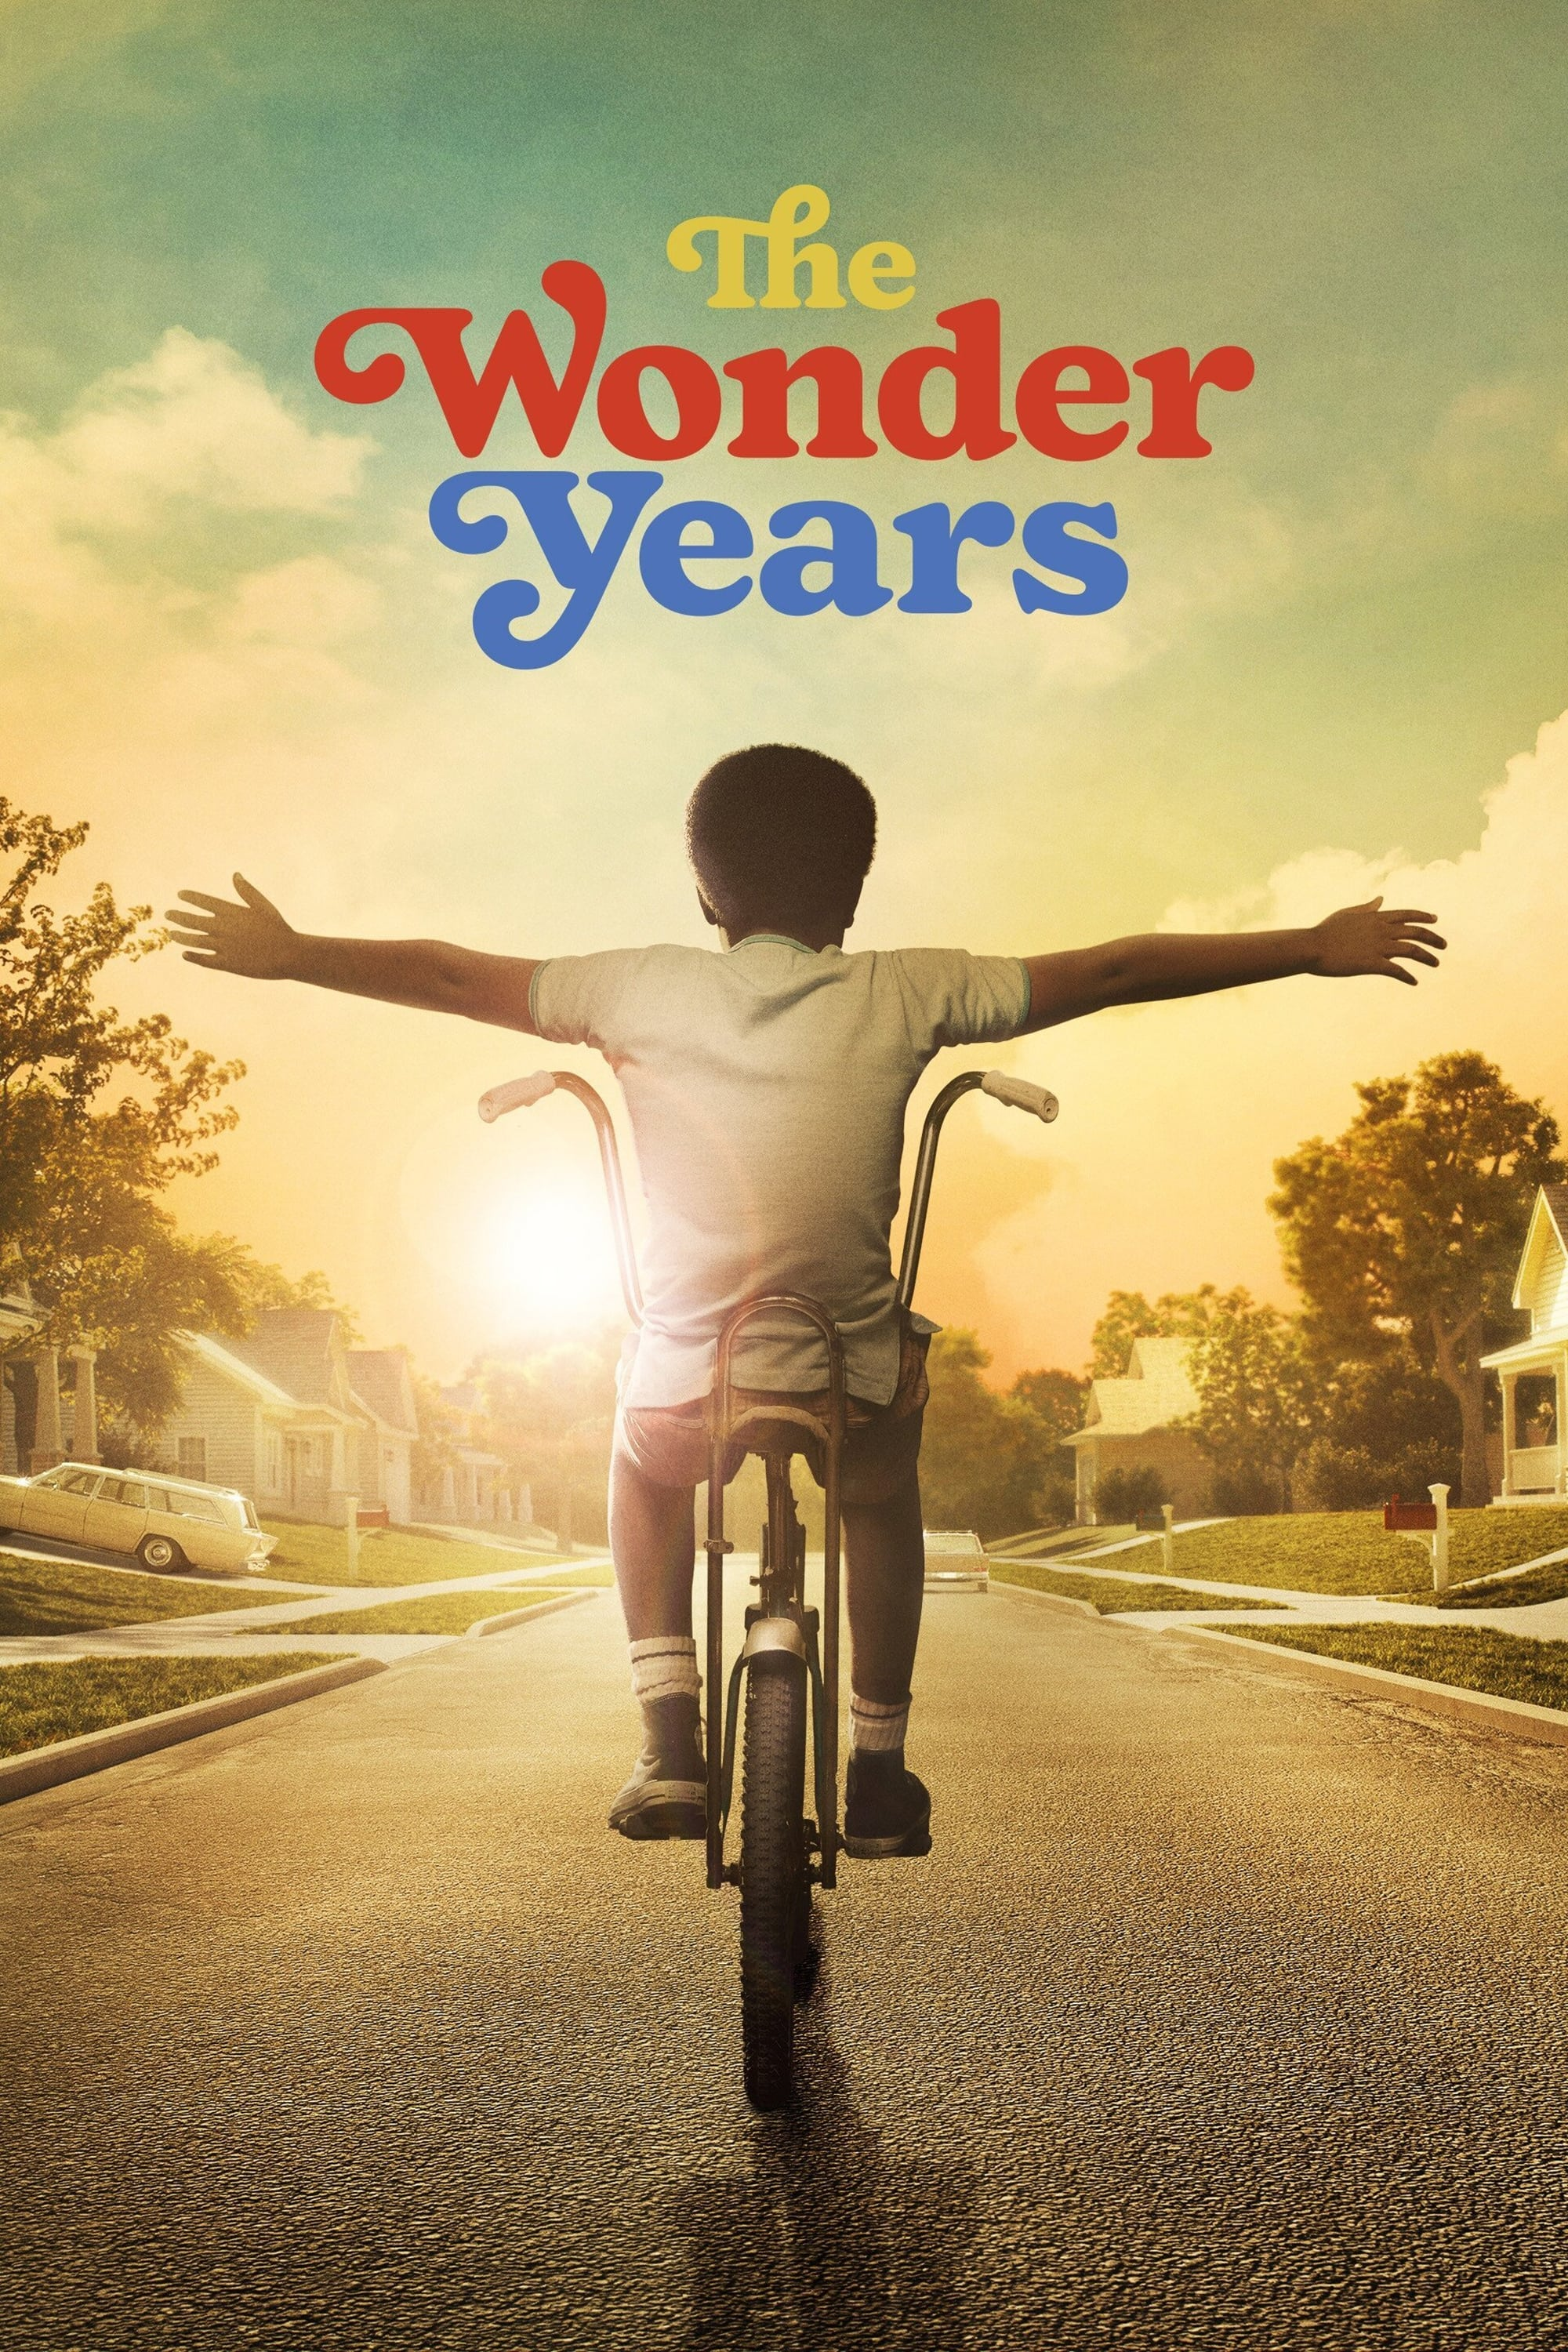 The Wonder Years TV Shows About 1960s